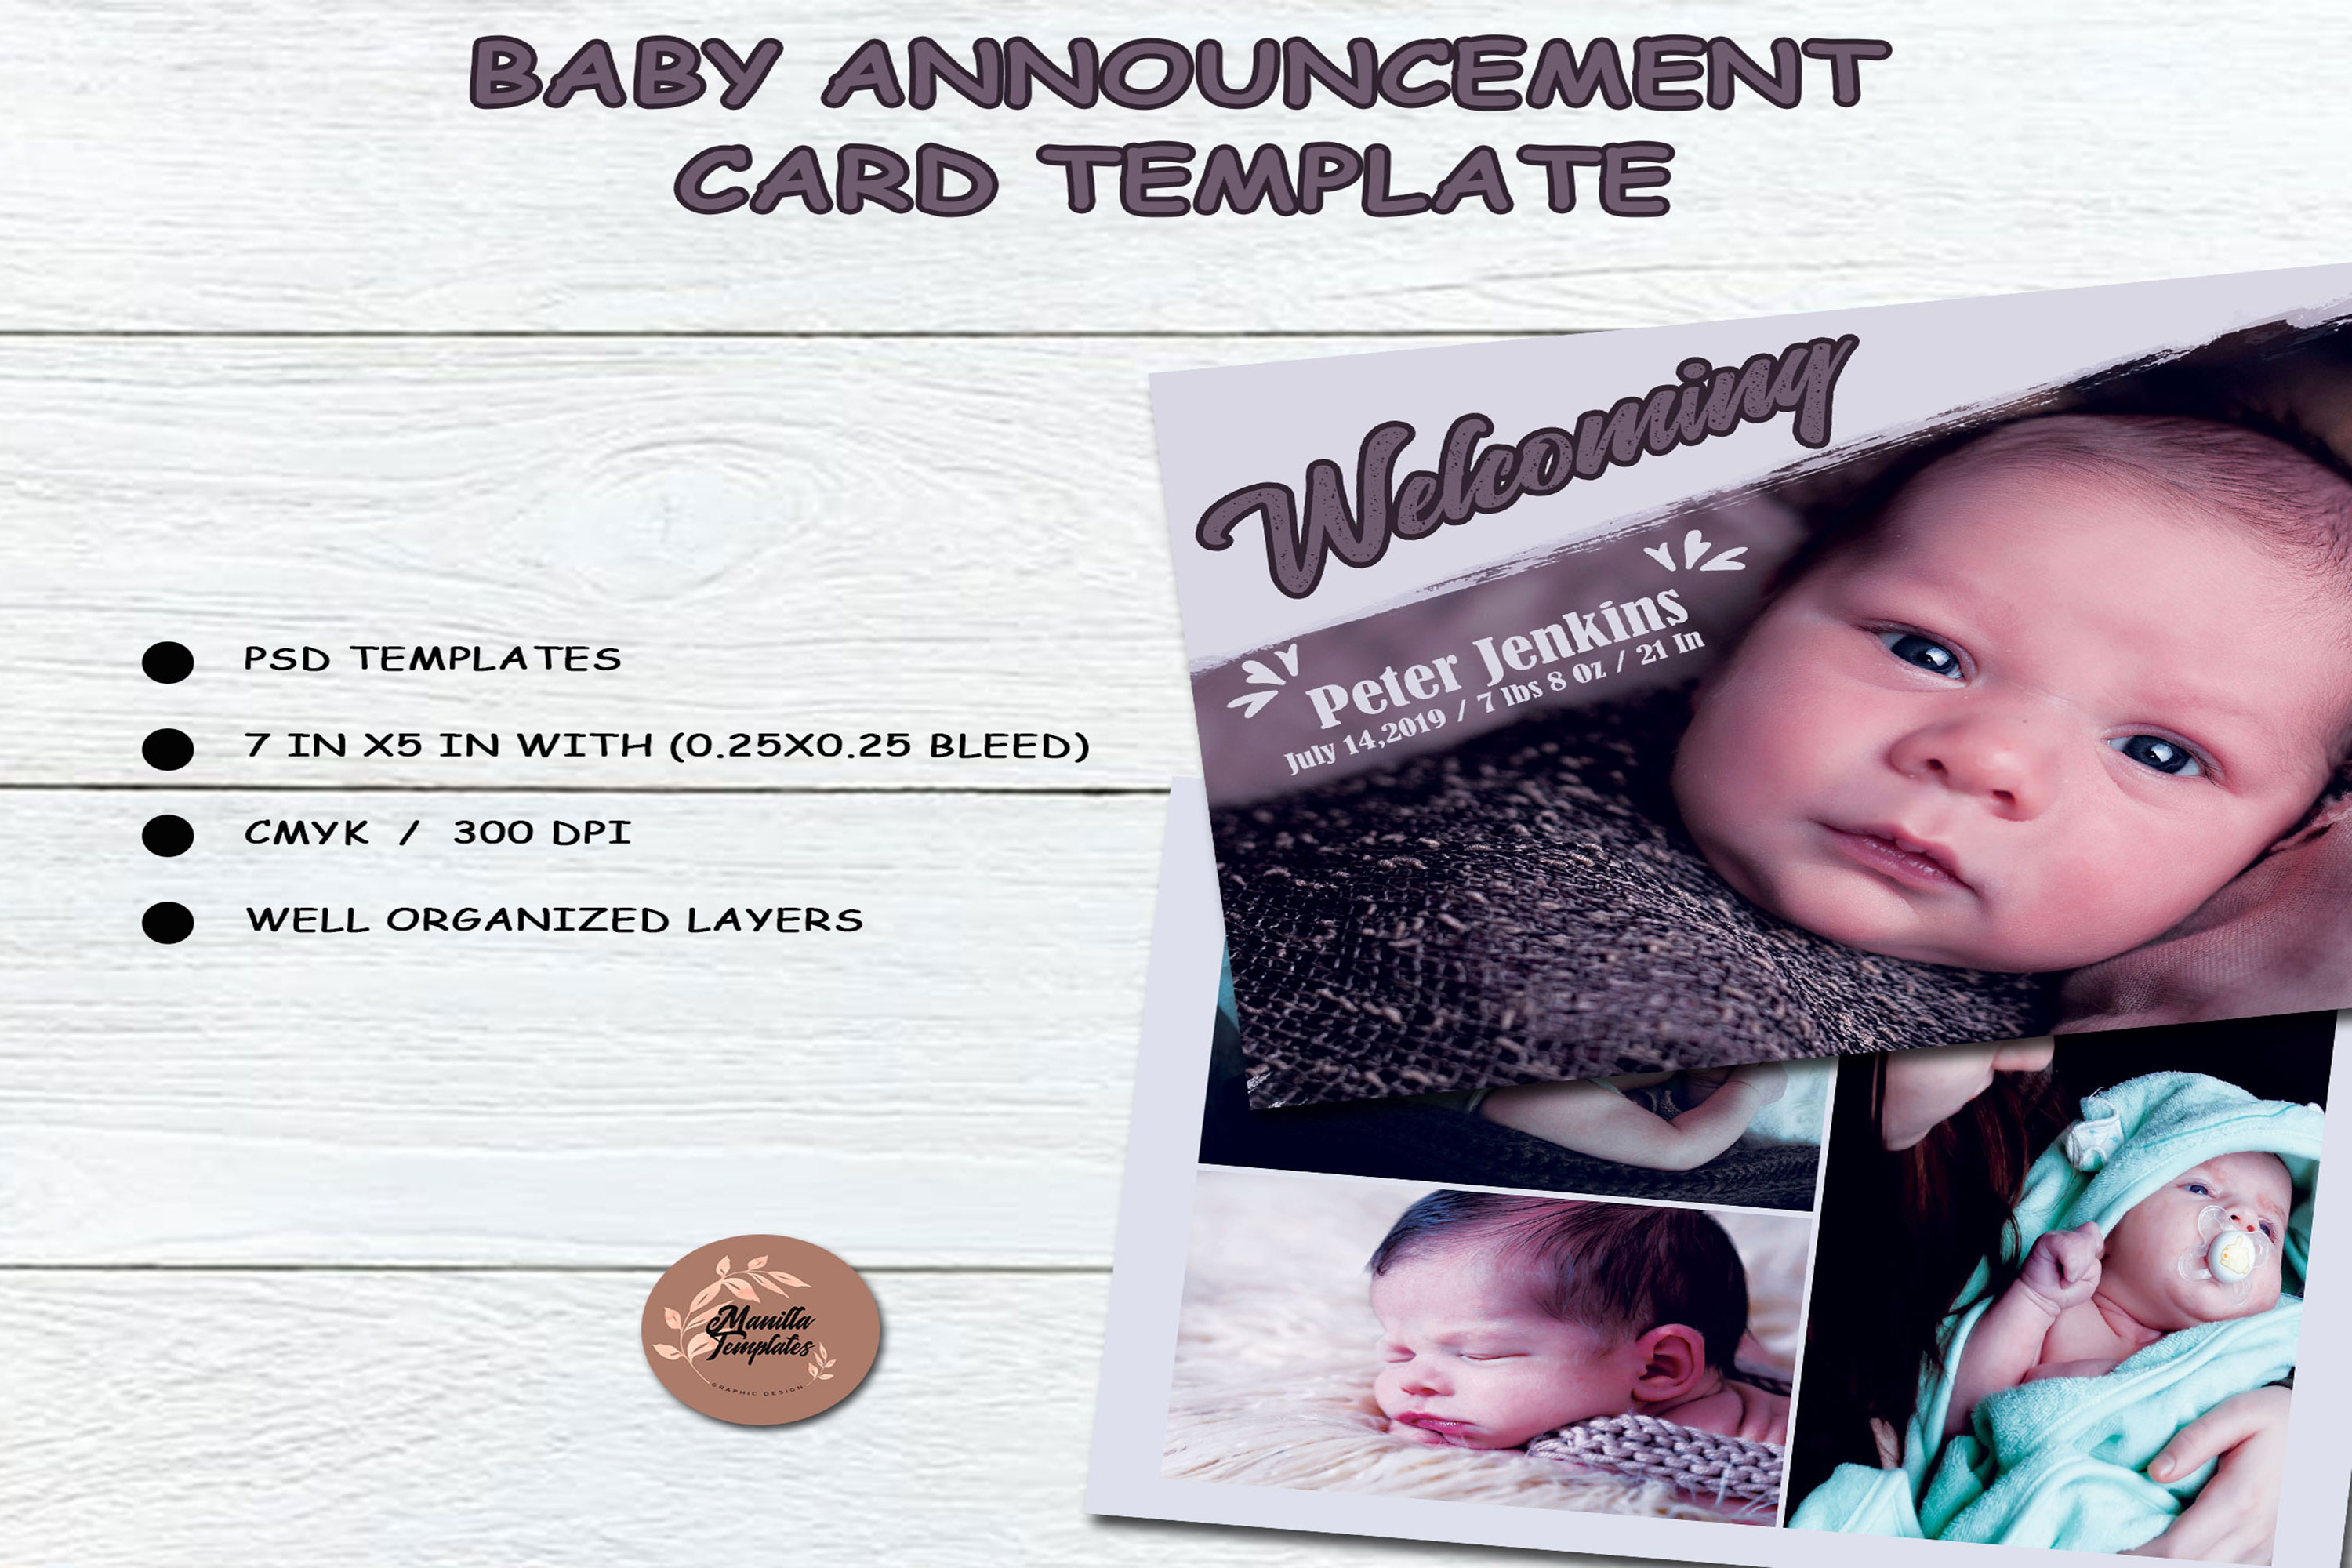 Baby Shower Announcement Card Template example image 3